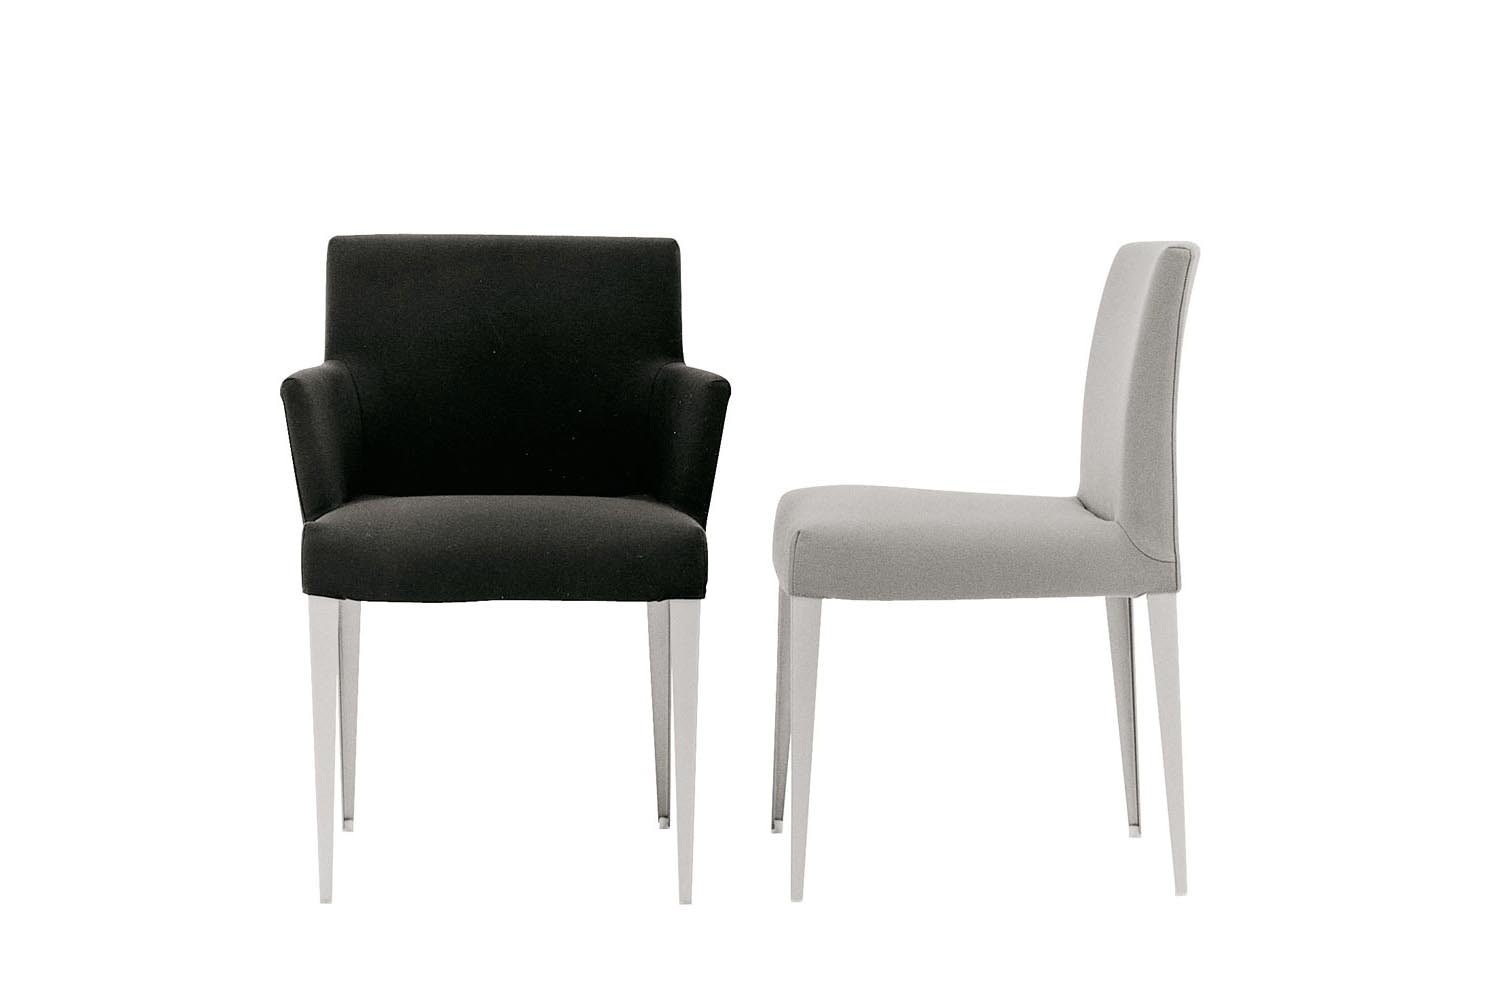 Melandra Chair by Antonio Citterio for B&B Italia